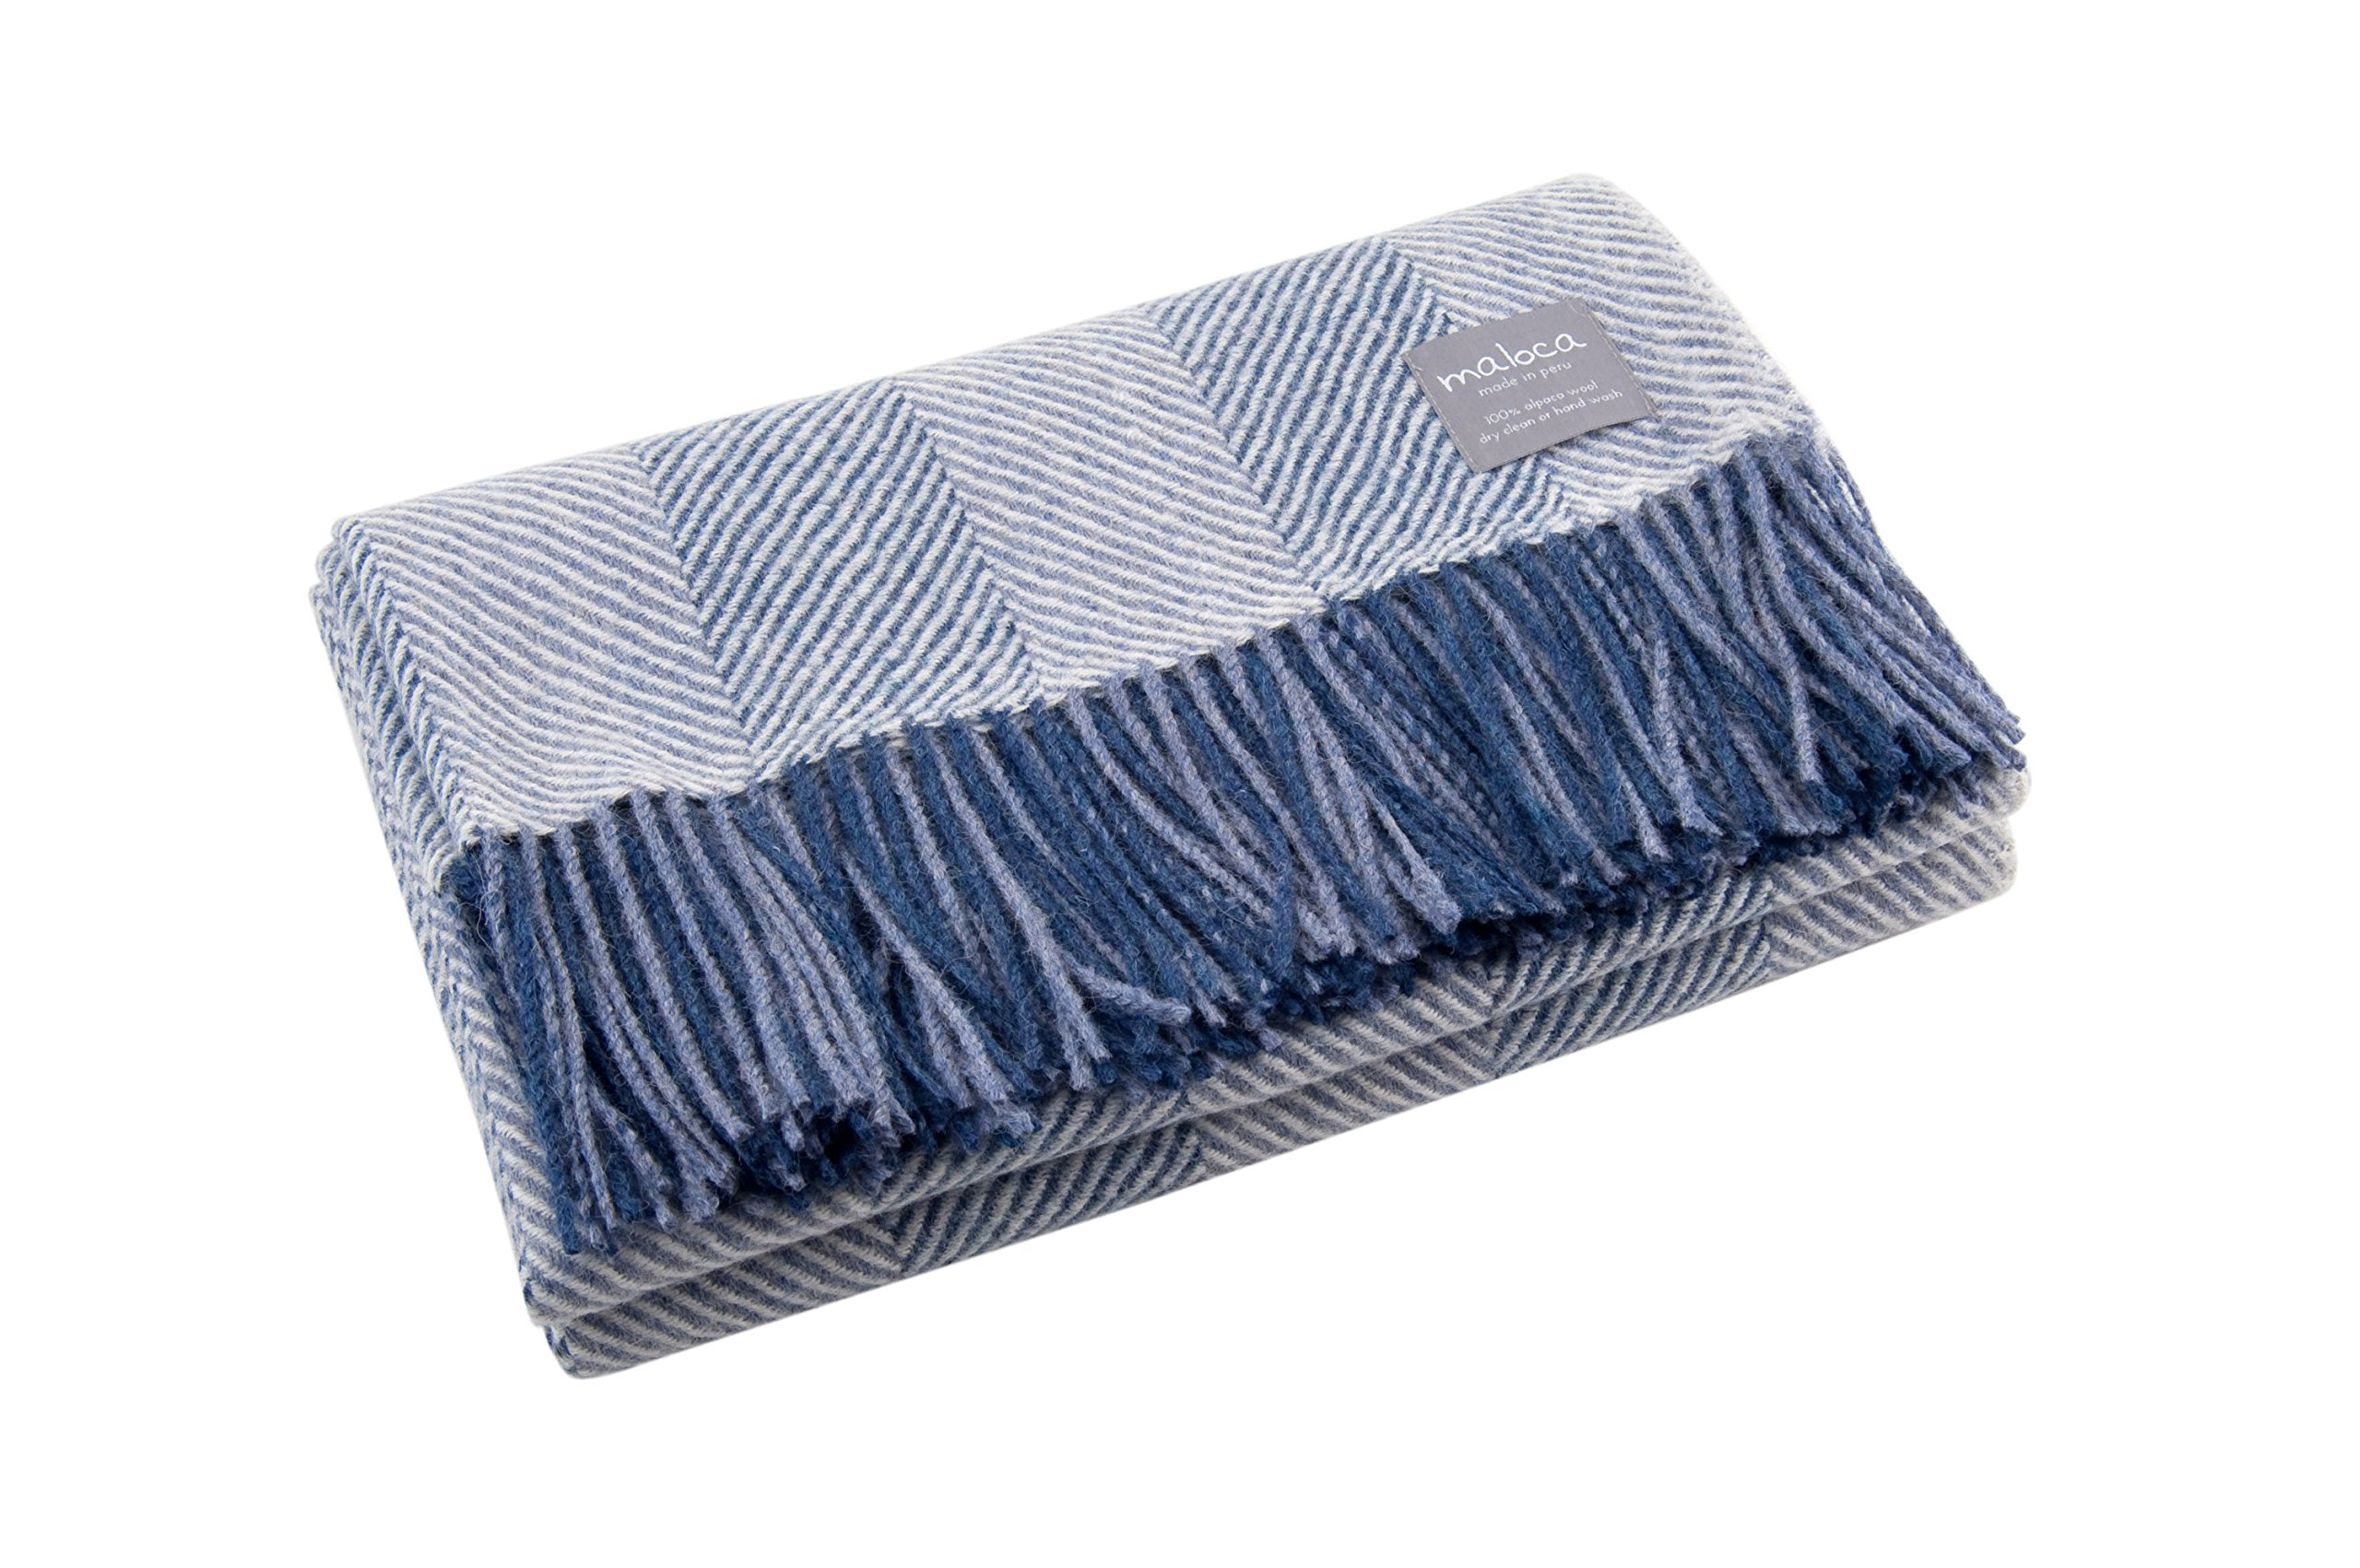 Maloca Alpaca Throw Blanket - 100% Premium Alpaca Wool Blue Heather Herringbone, Ethically Sourced, The Perfect Gift for Any Age or Occasion. Limited Production